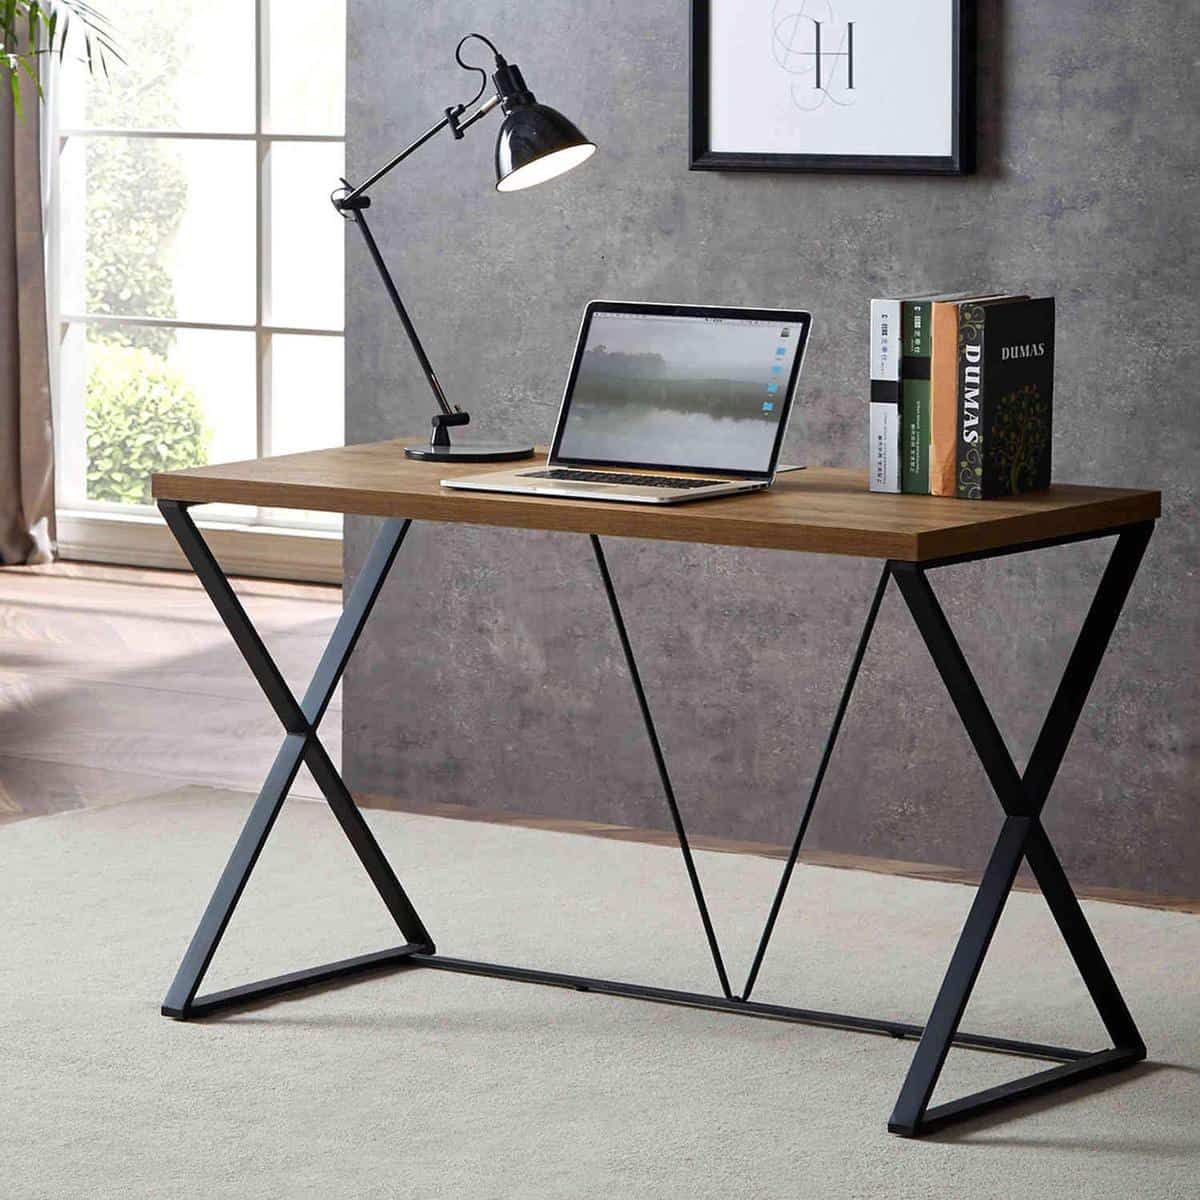 The Industrial Themed Computer Desk With A Glance Of A Rustic Element Writingdesk Rustic Computer Desk Wood And Metal Desk Wood Furniture Design